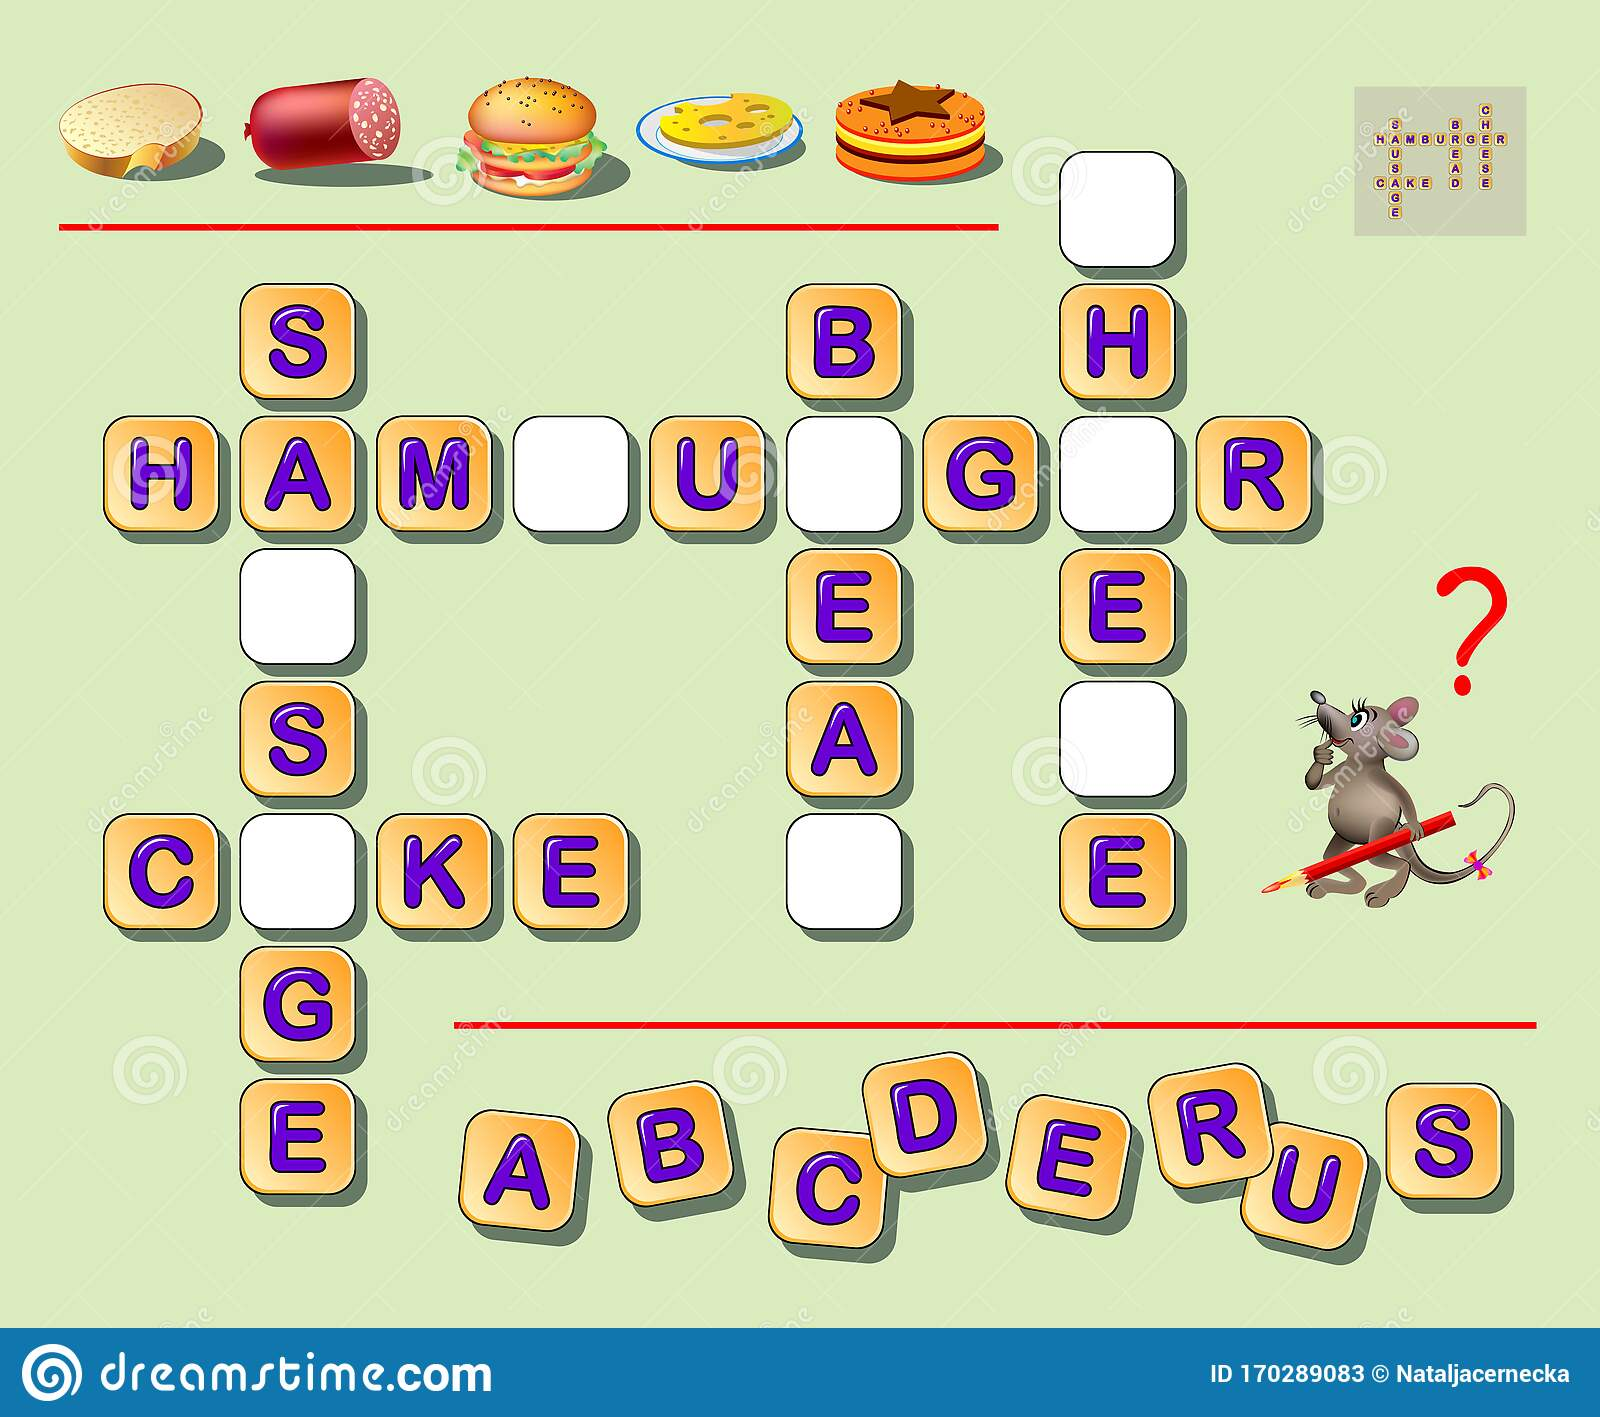 Logic Crossword Puzzle Game For Kids To Study English